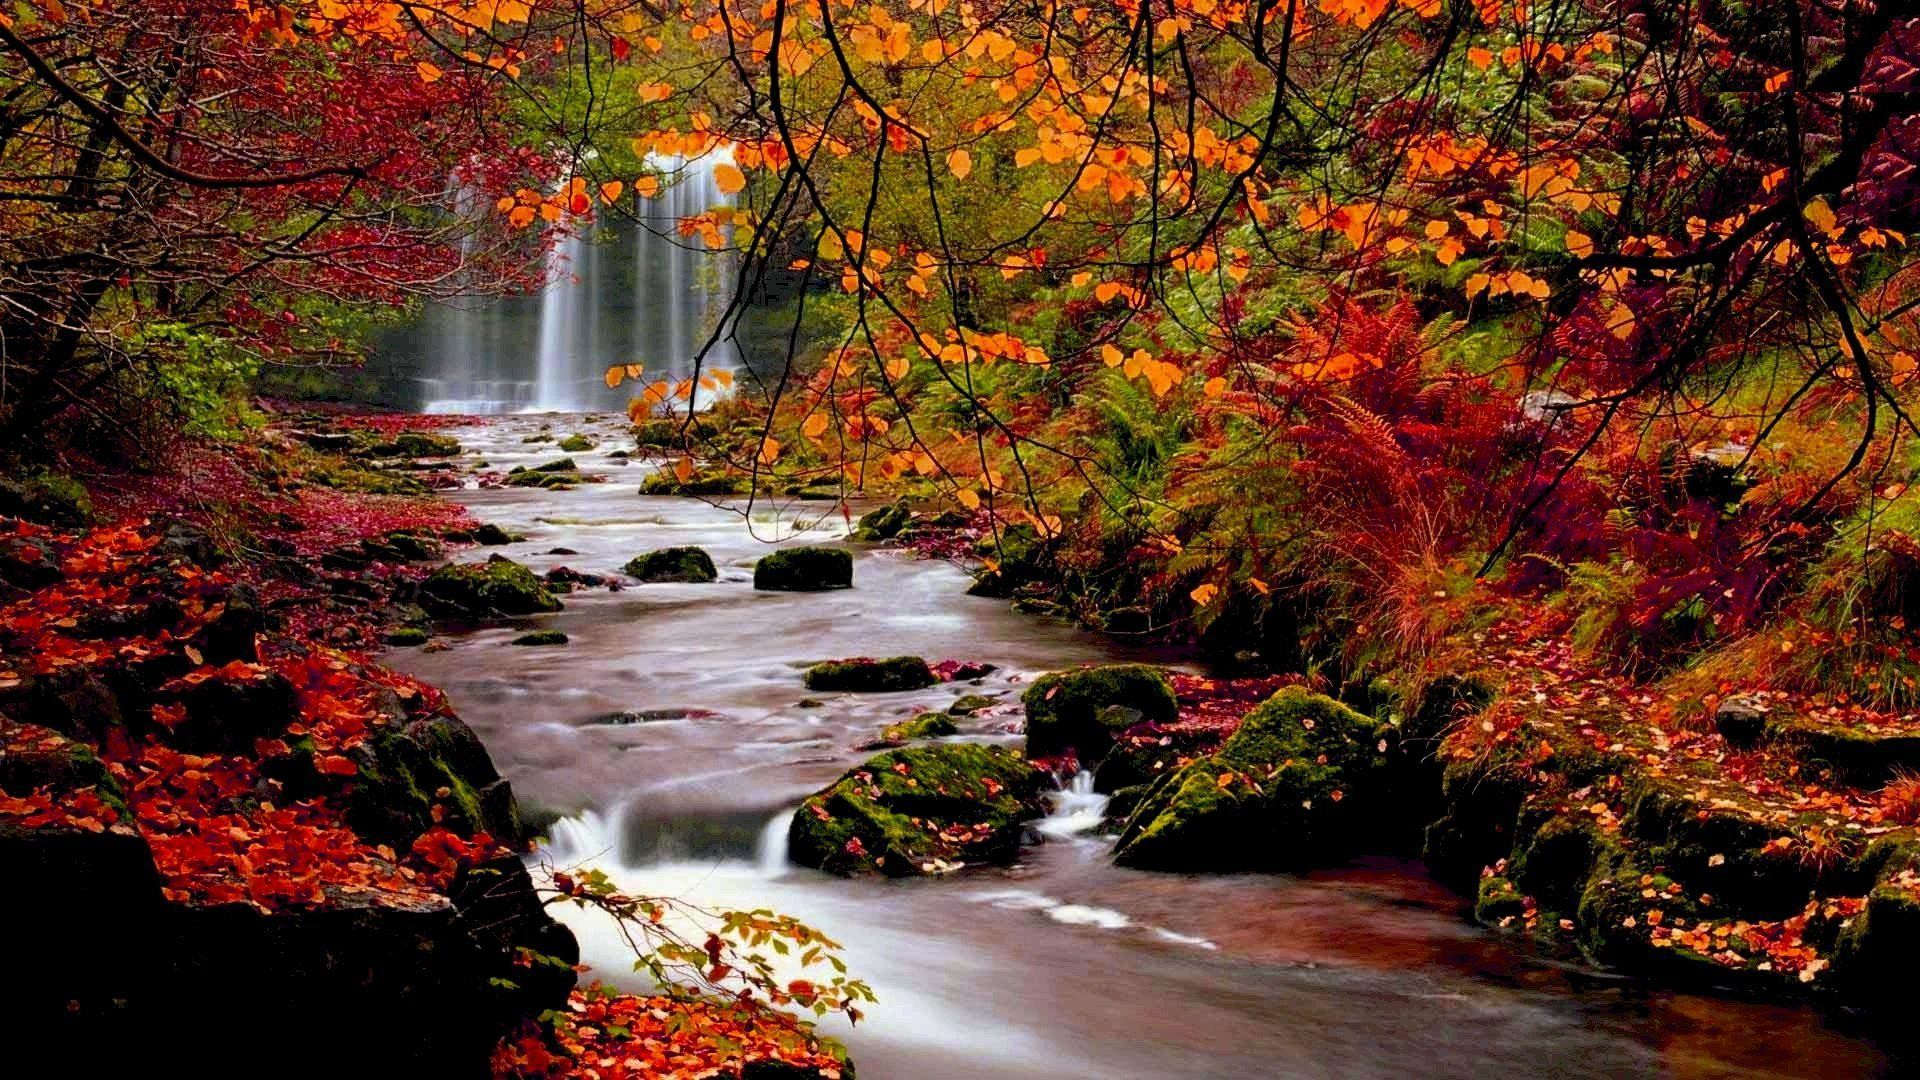 Fall wallpaper for desktop 1920x1080 60 images - Free landscape backgrounds ...